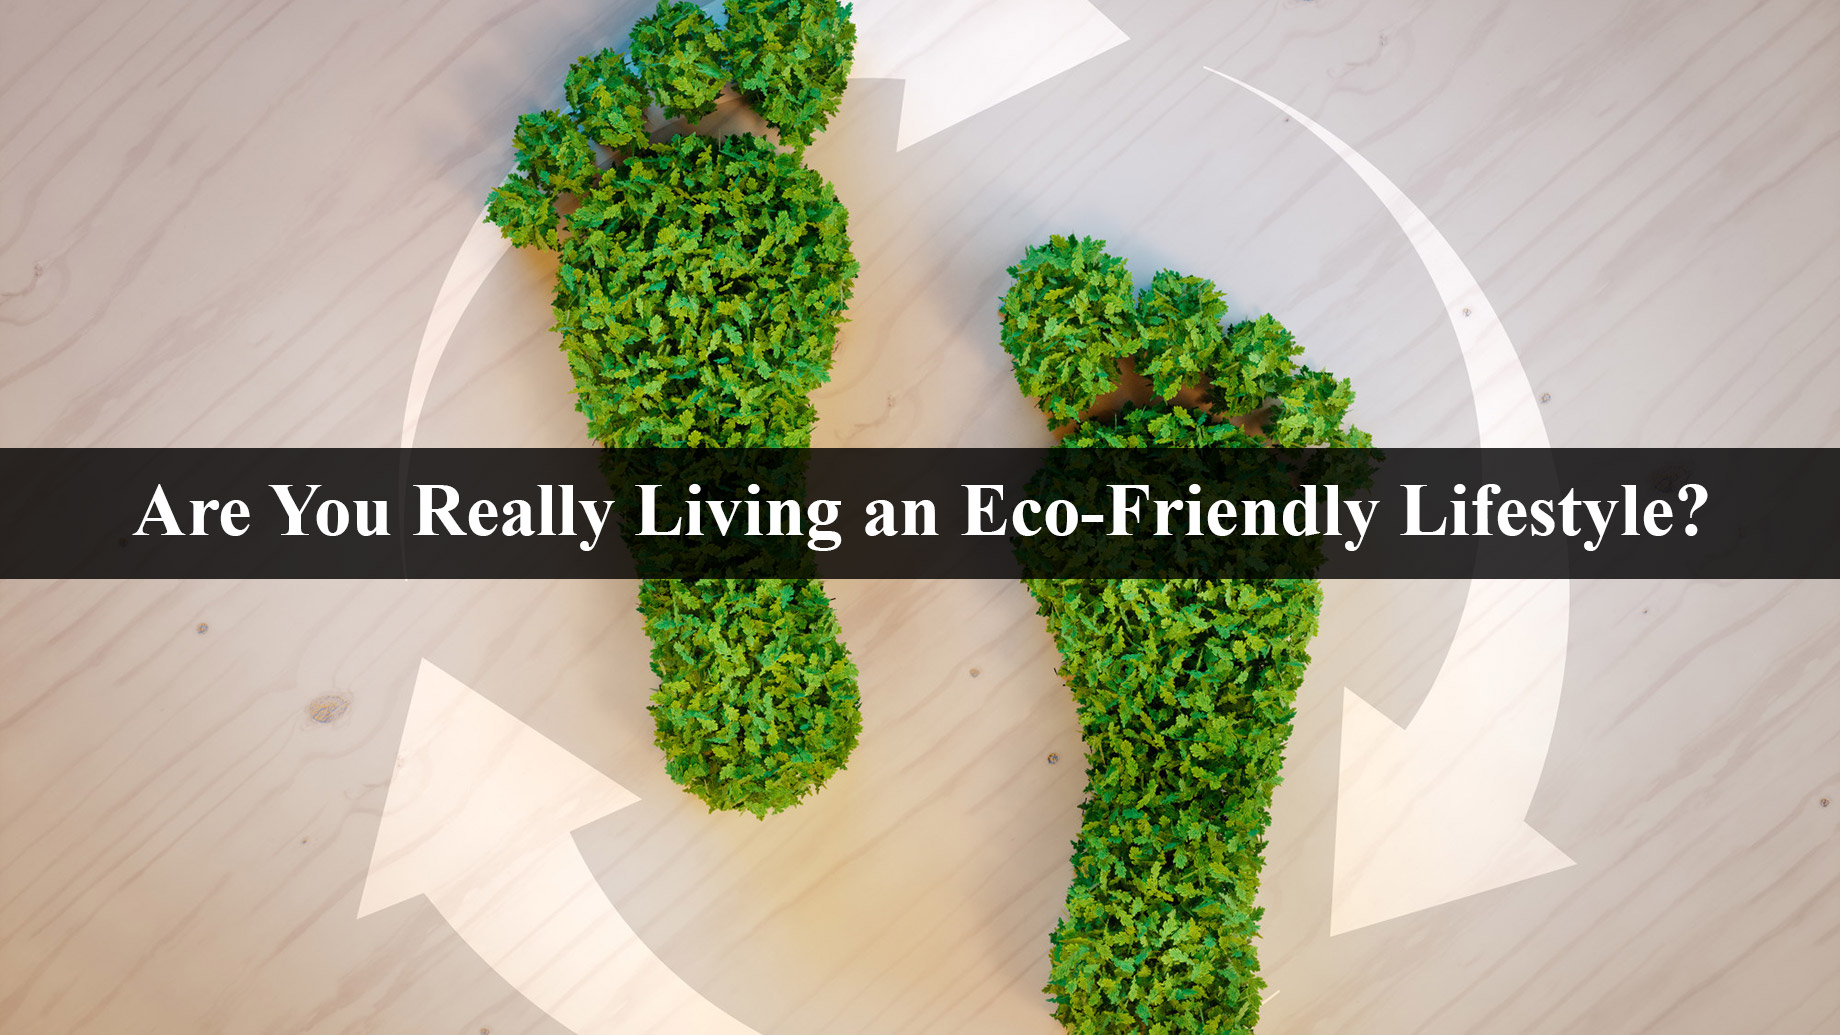 Are You Really Living an Eco-Friendly Lifestyle?